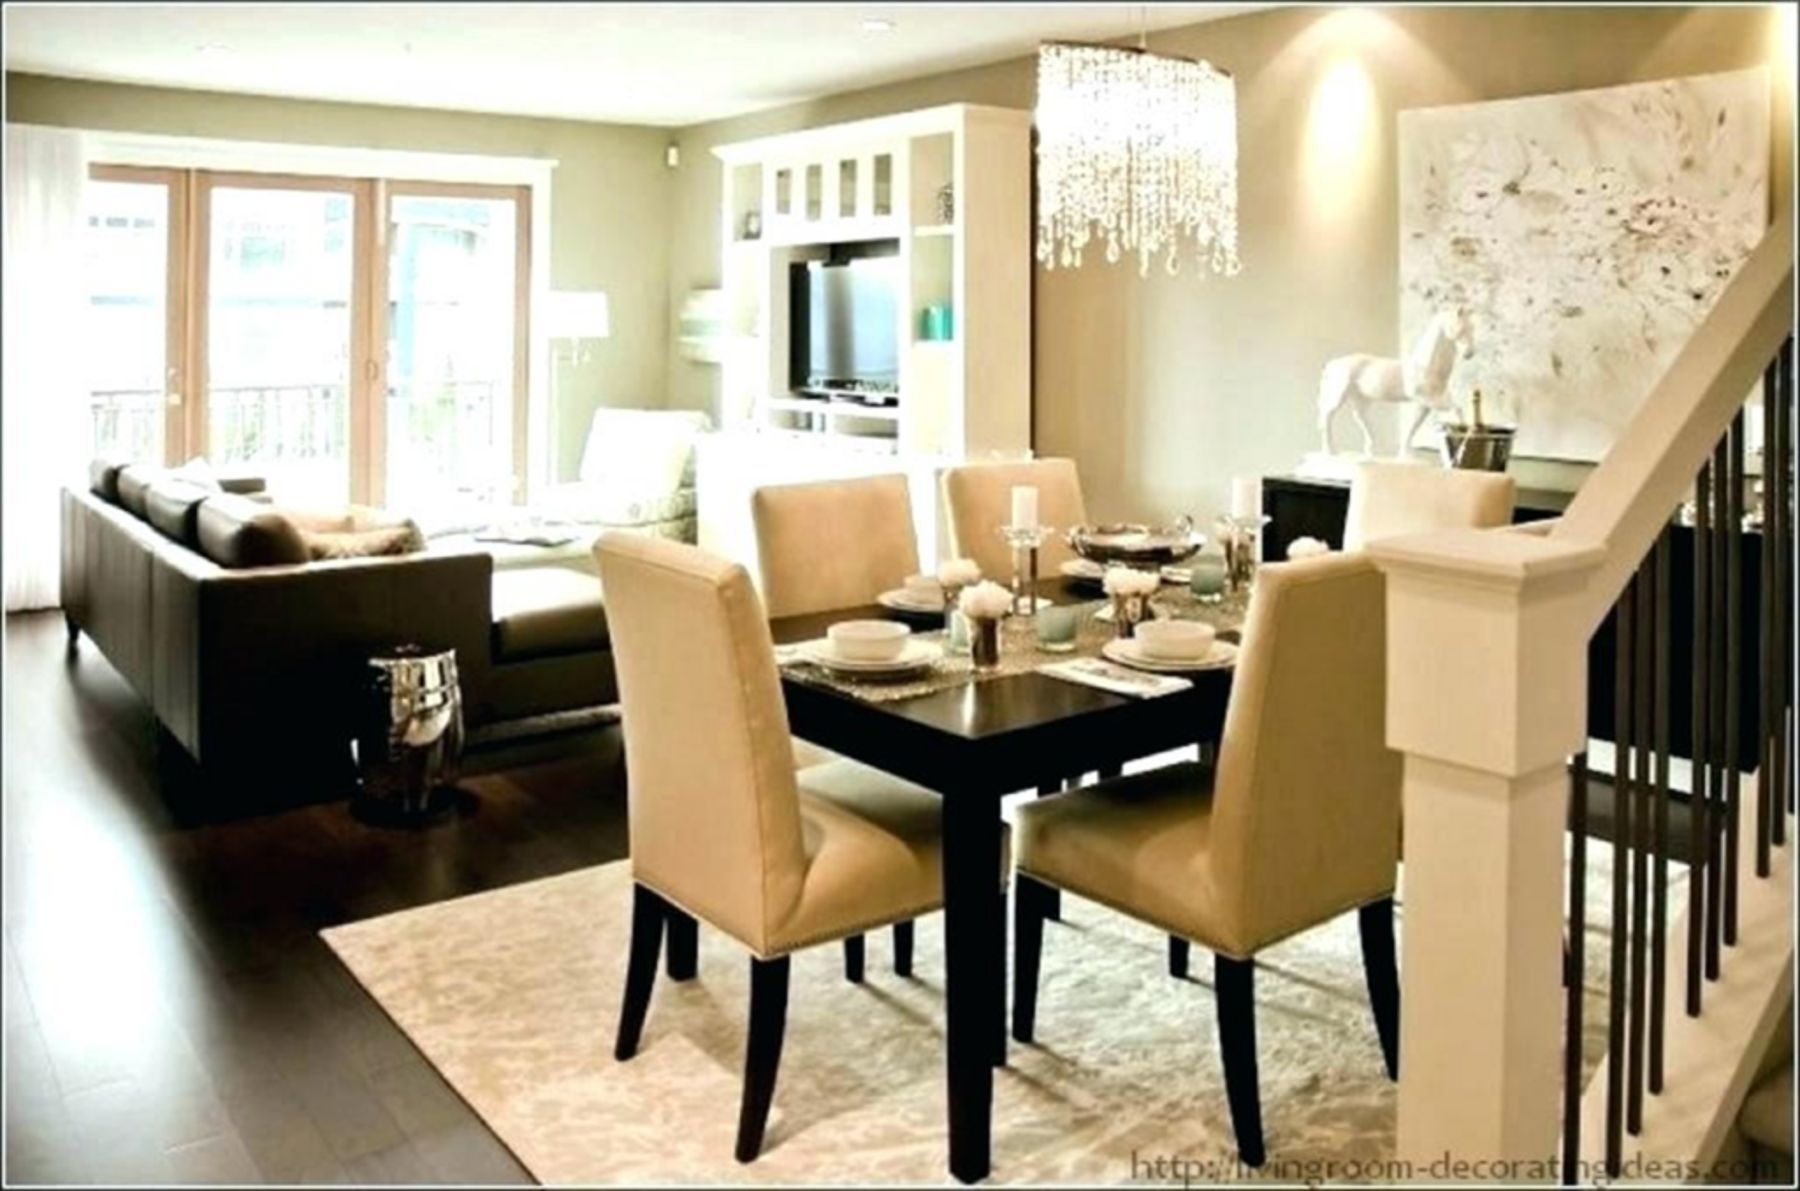 Outstanding 12 Incredible Dining Room Design And Decoration Ideas For Tiny House Inspiratio Living Room Dining Room Combo Living Dining Combo Dining Room Small